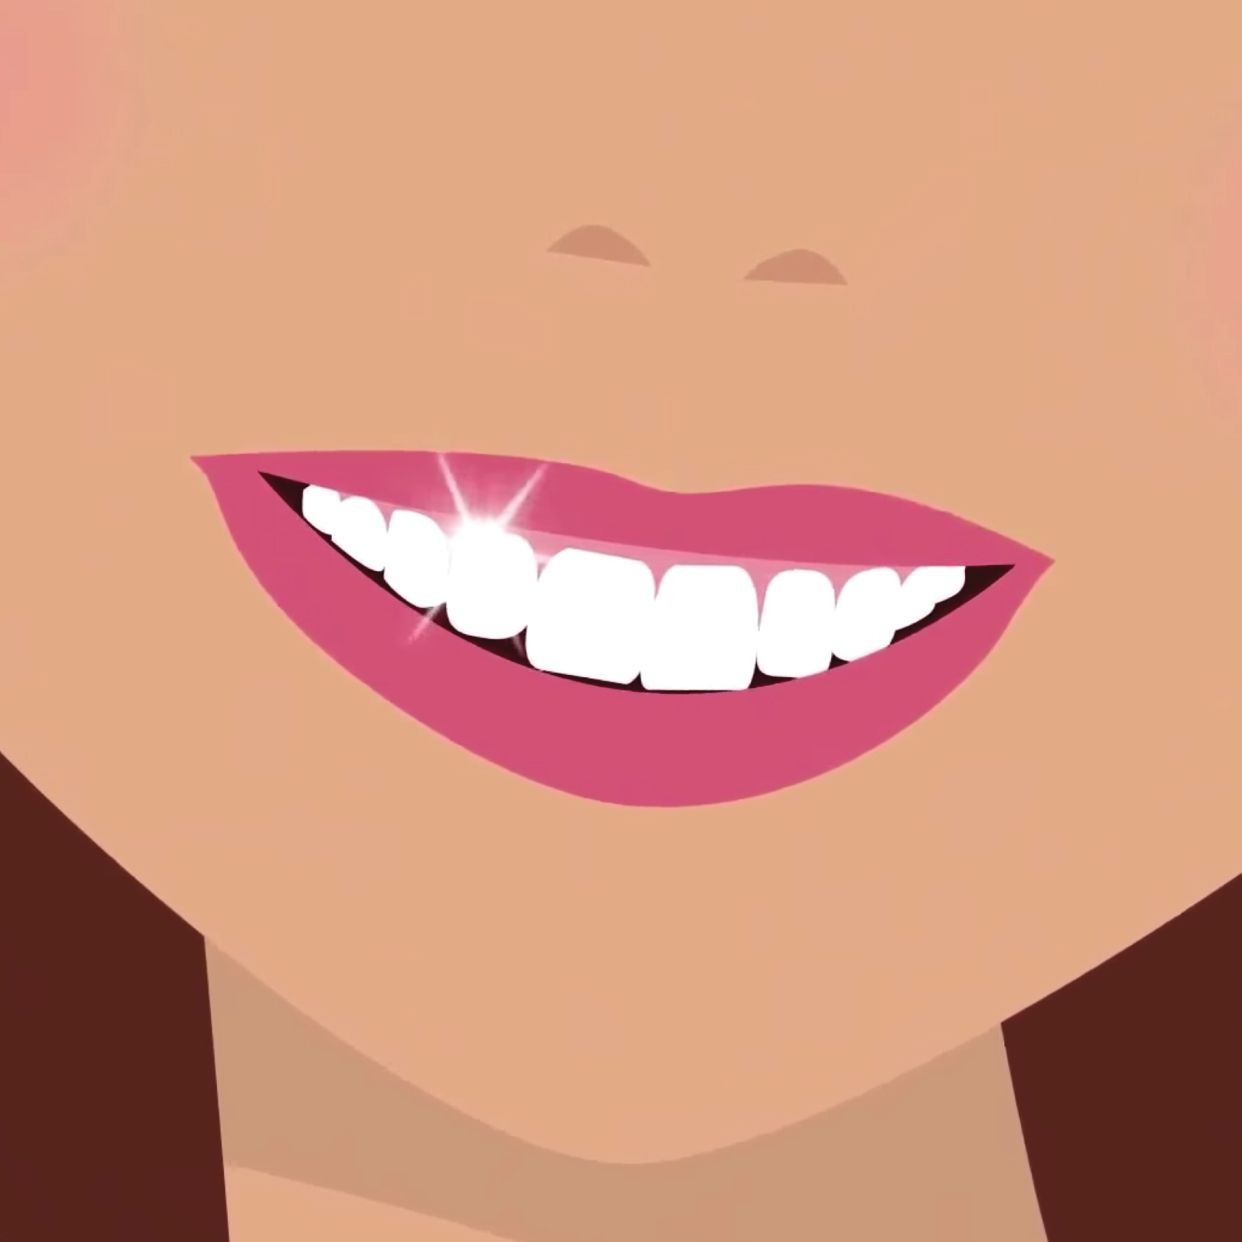 WATCH THIS VIDEO to find out how #TeethWhitening works! #LondonSmileCare